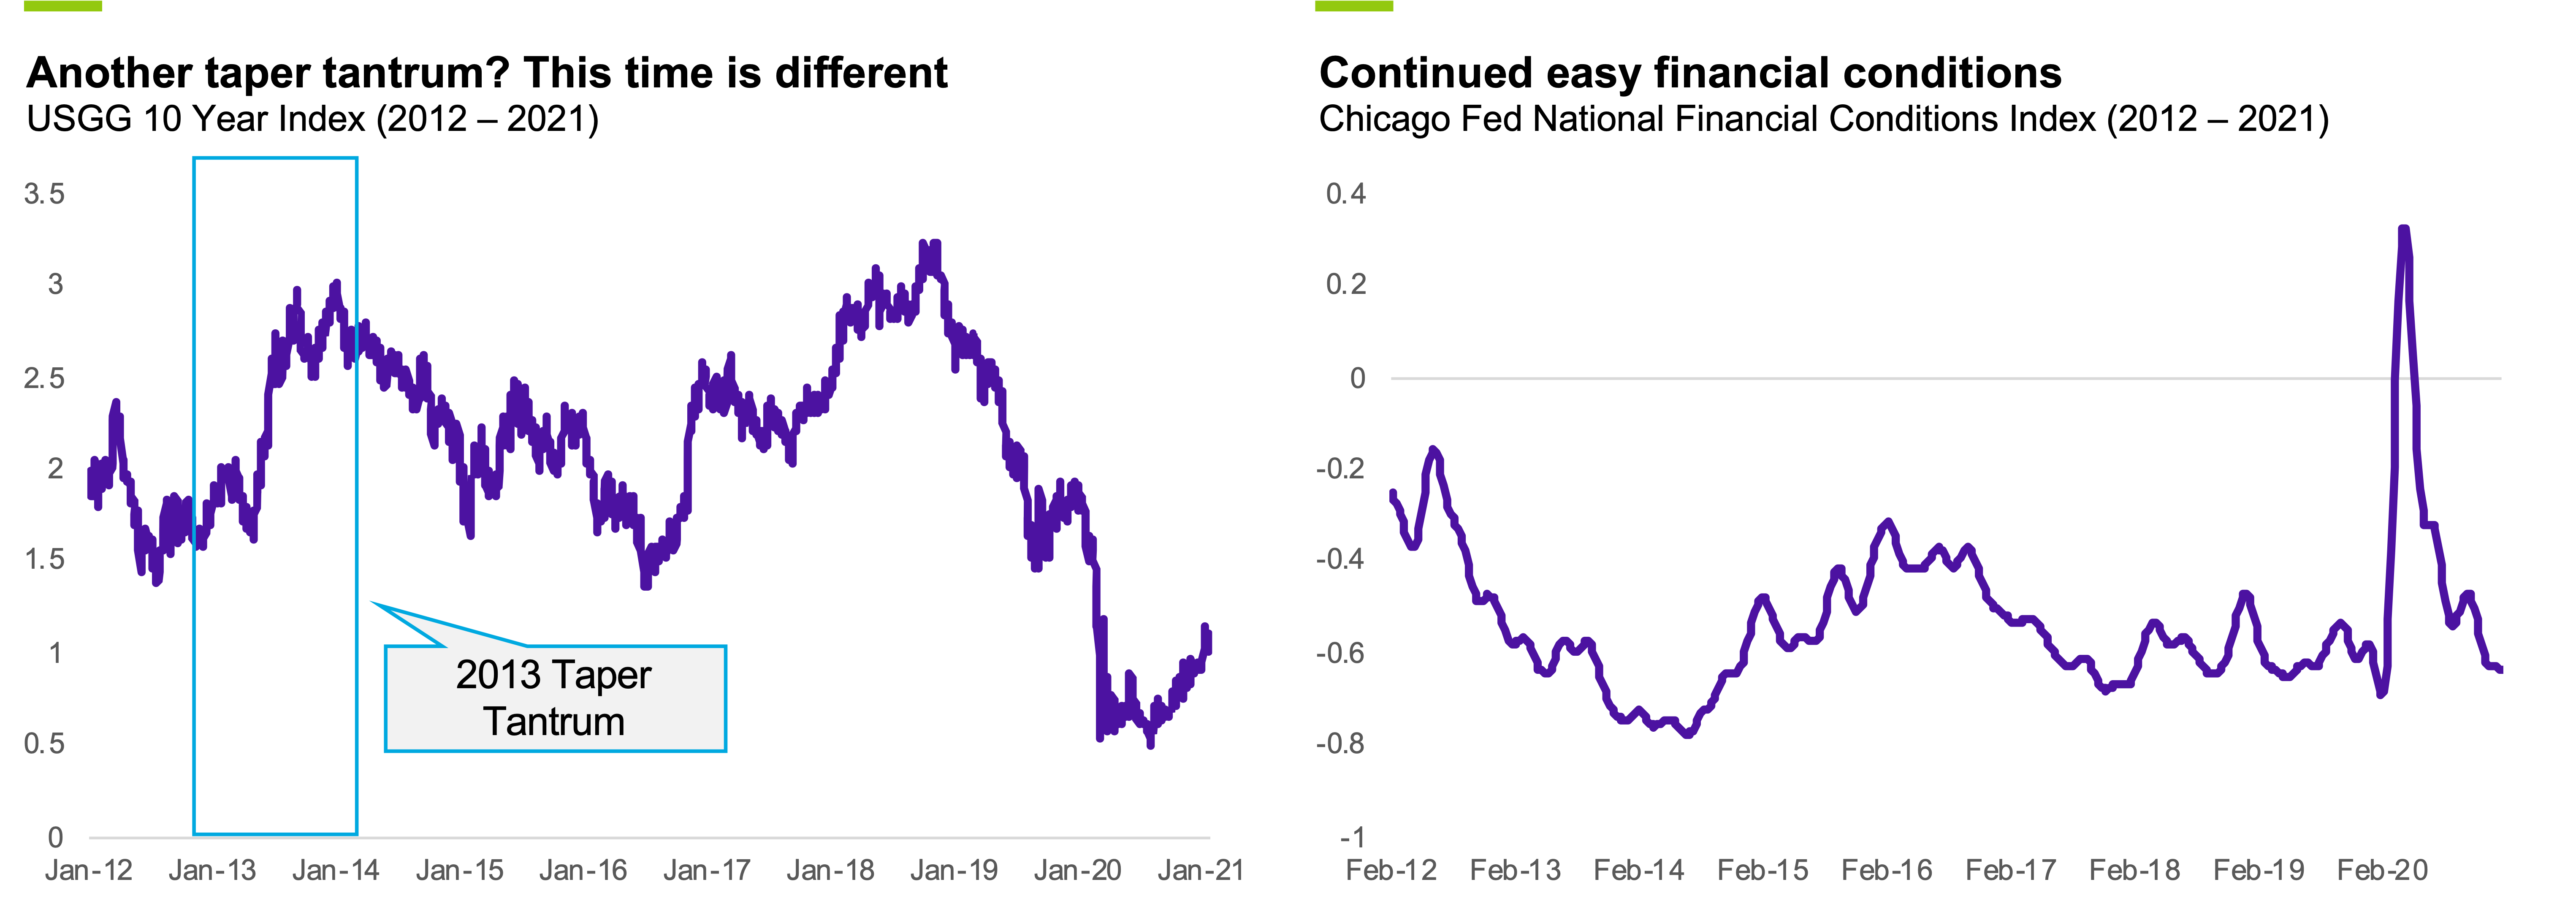 10 year treasury and financial conditions index